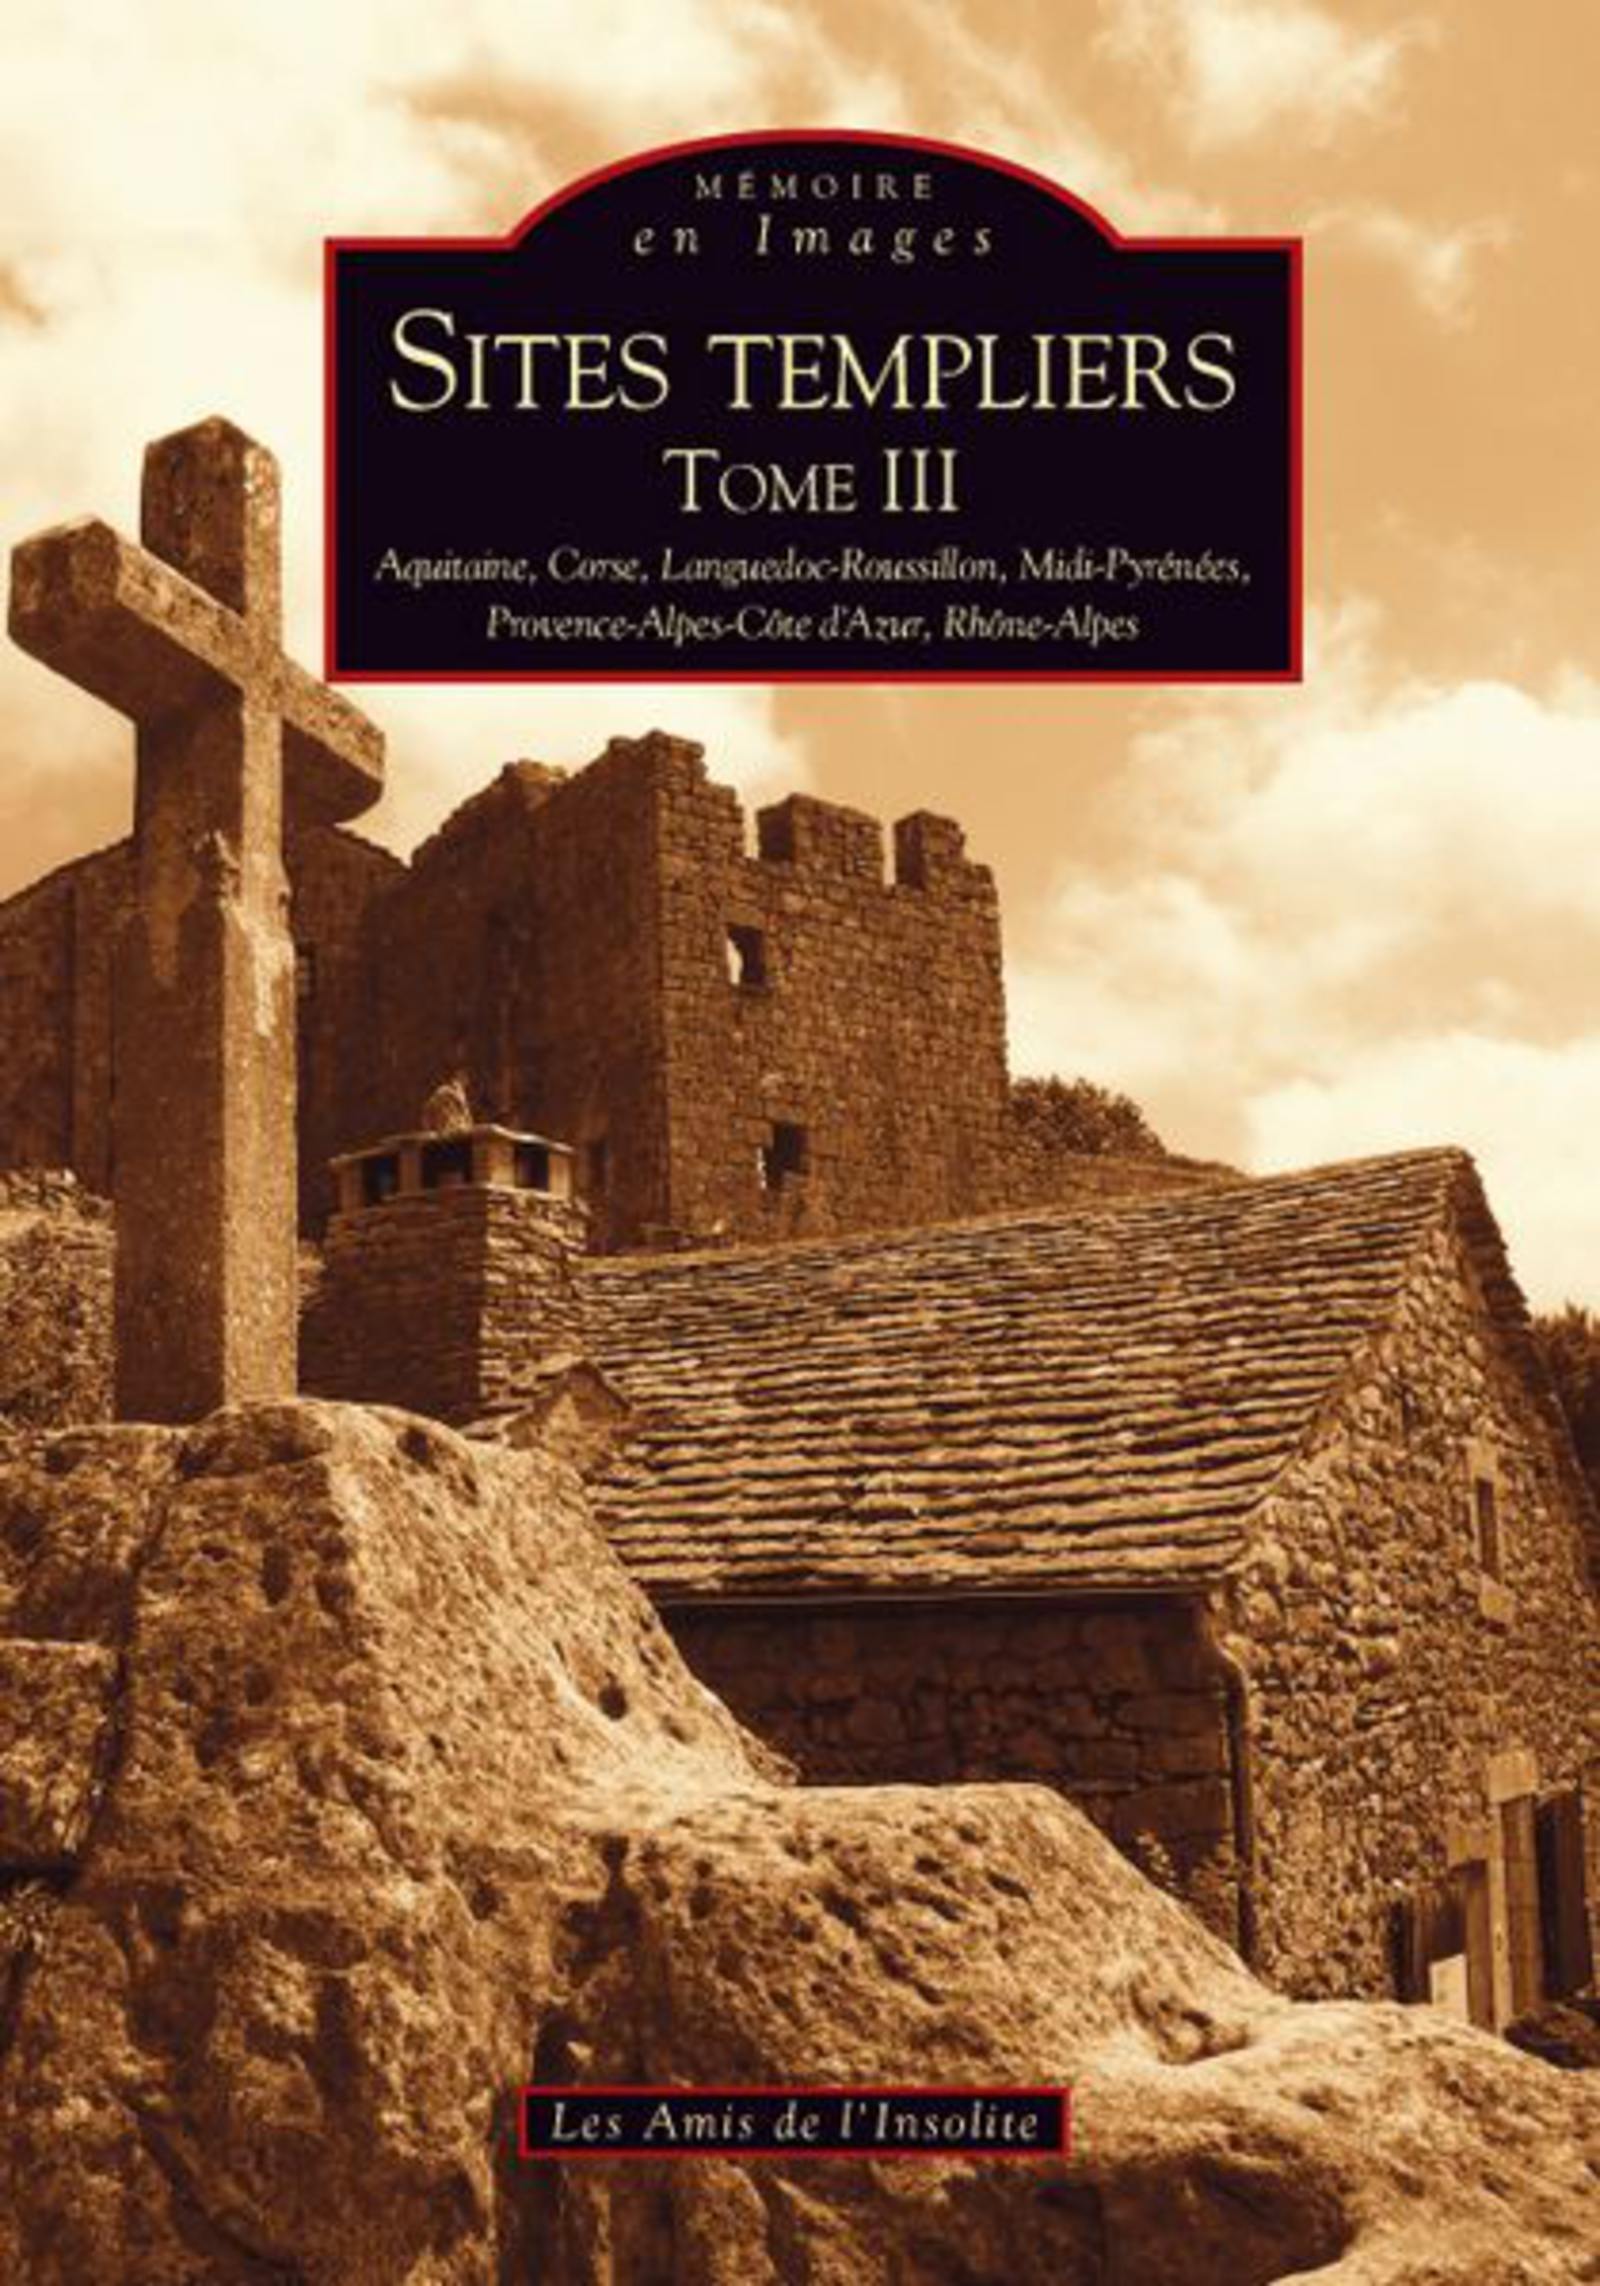 SITES TEMPLIERS - TOME III